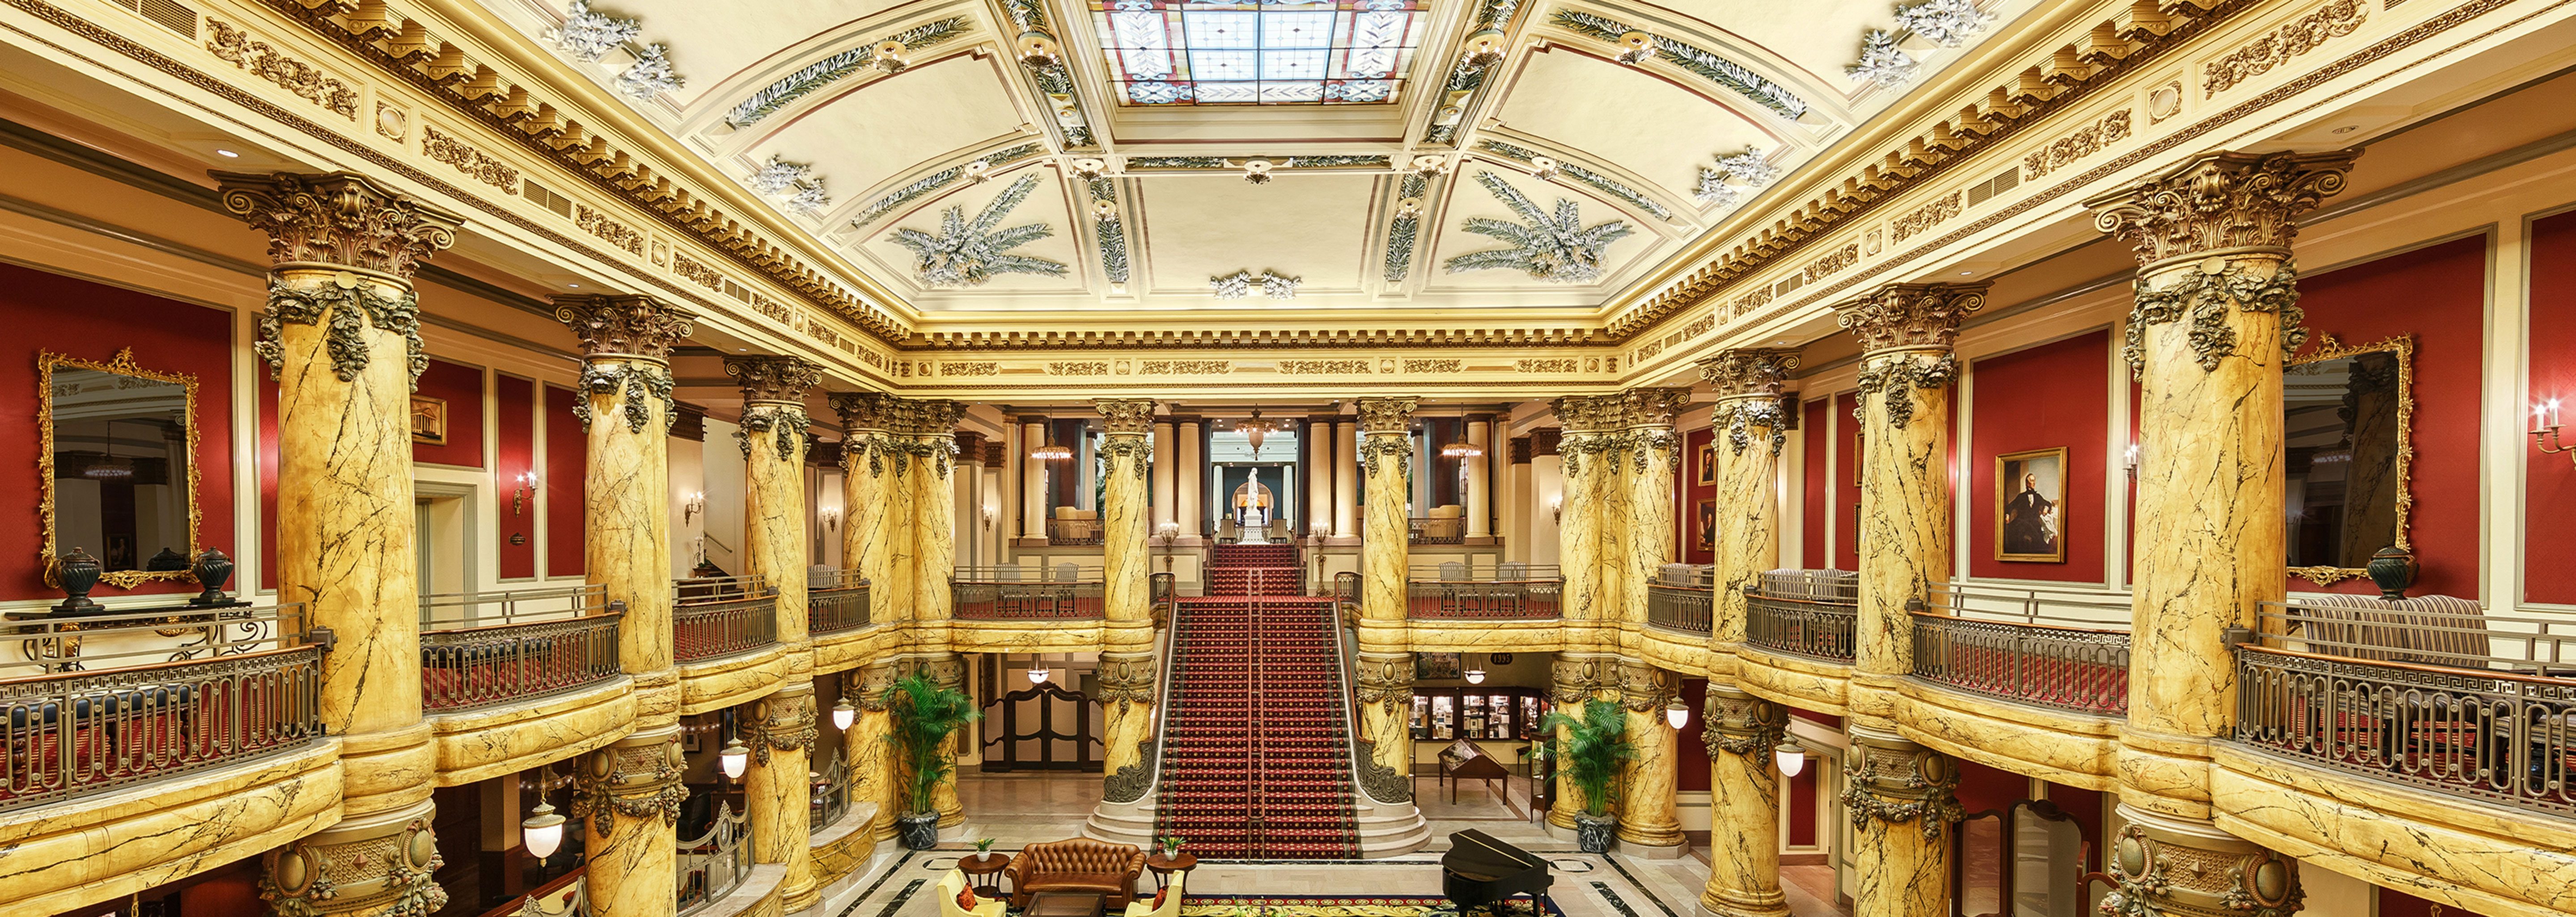 Image of Rotunda and Staircase at The Jefferson Hotel, a member of Historic Hotels of America, in Richmond, Virginia